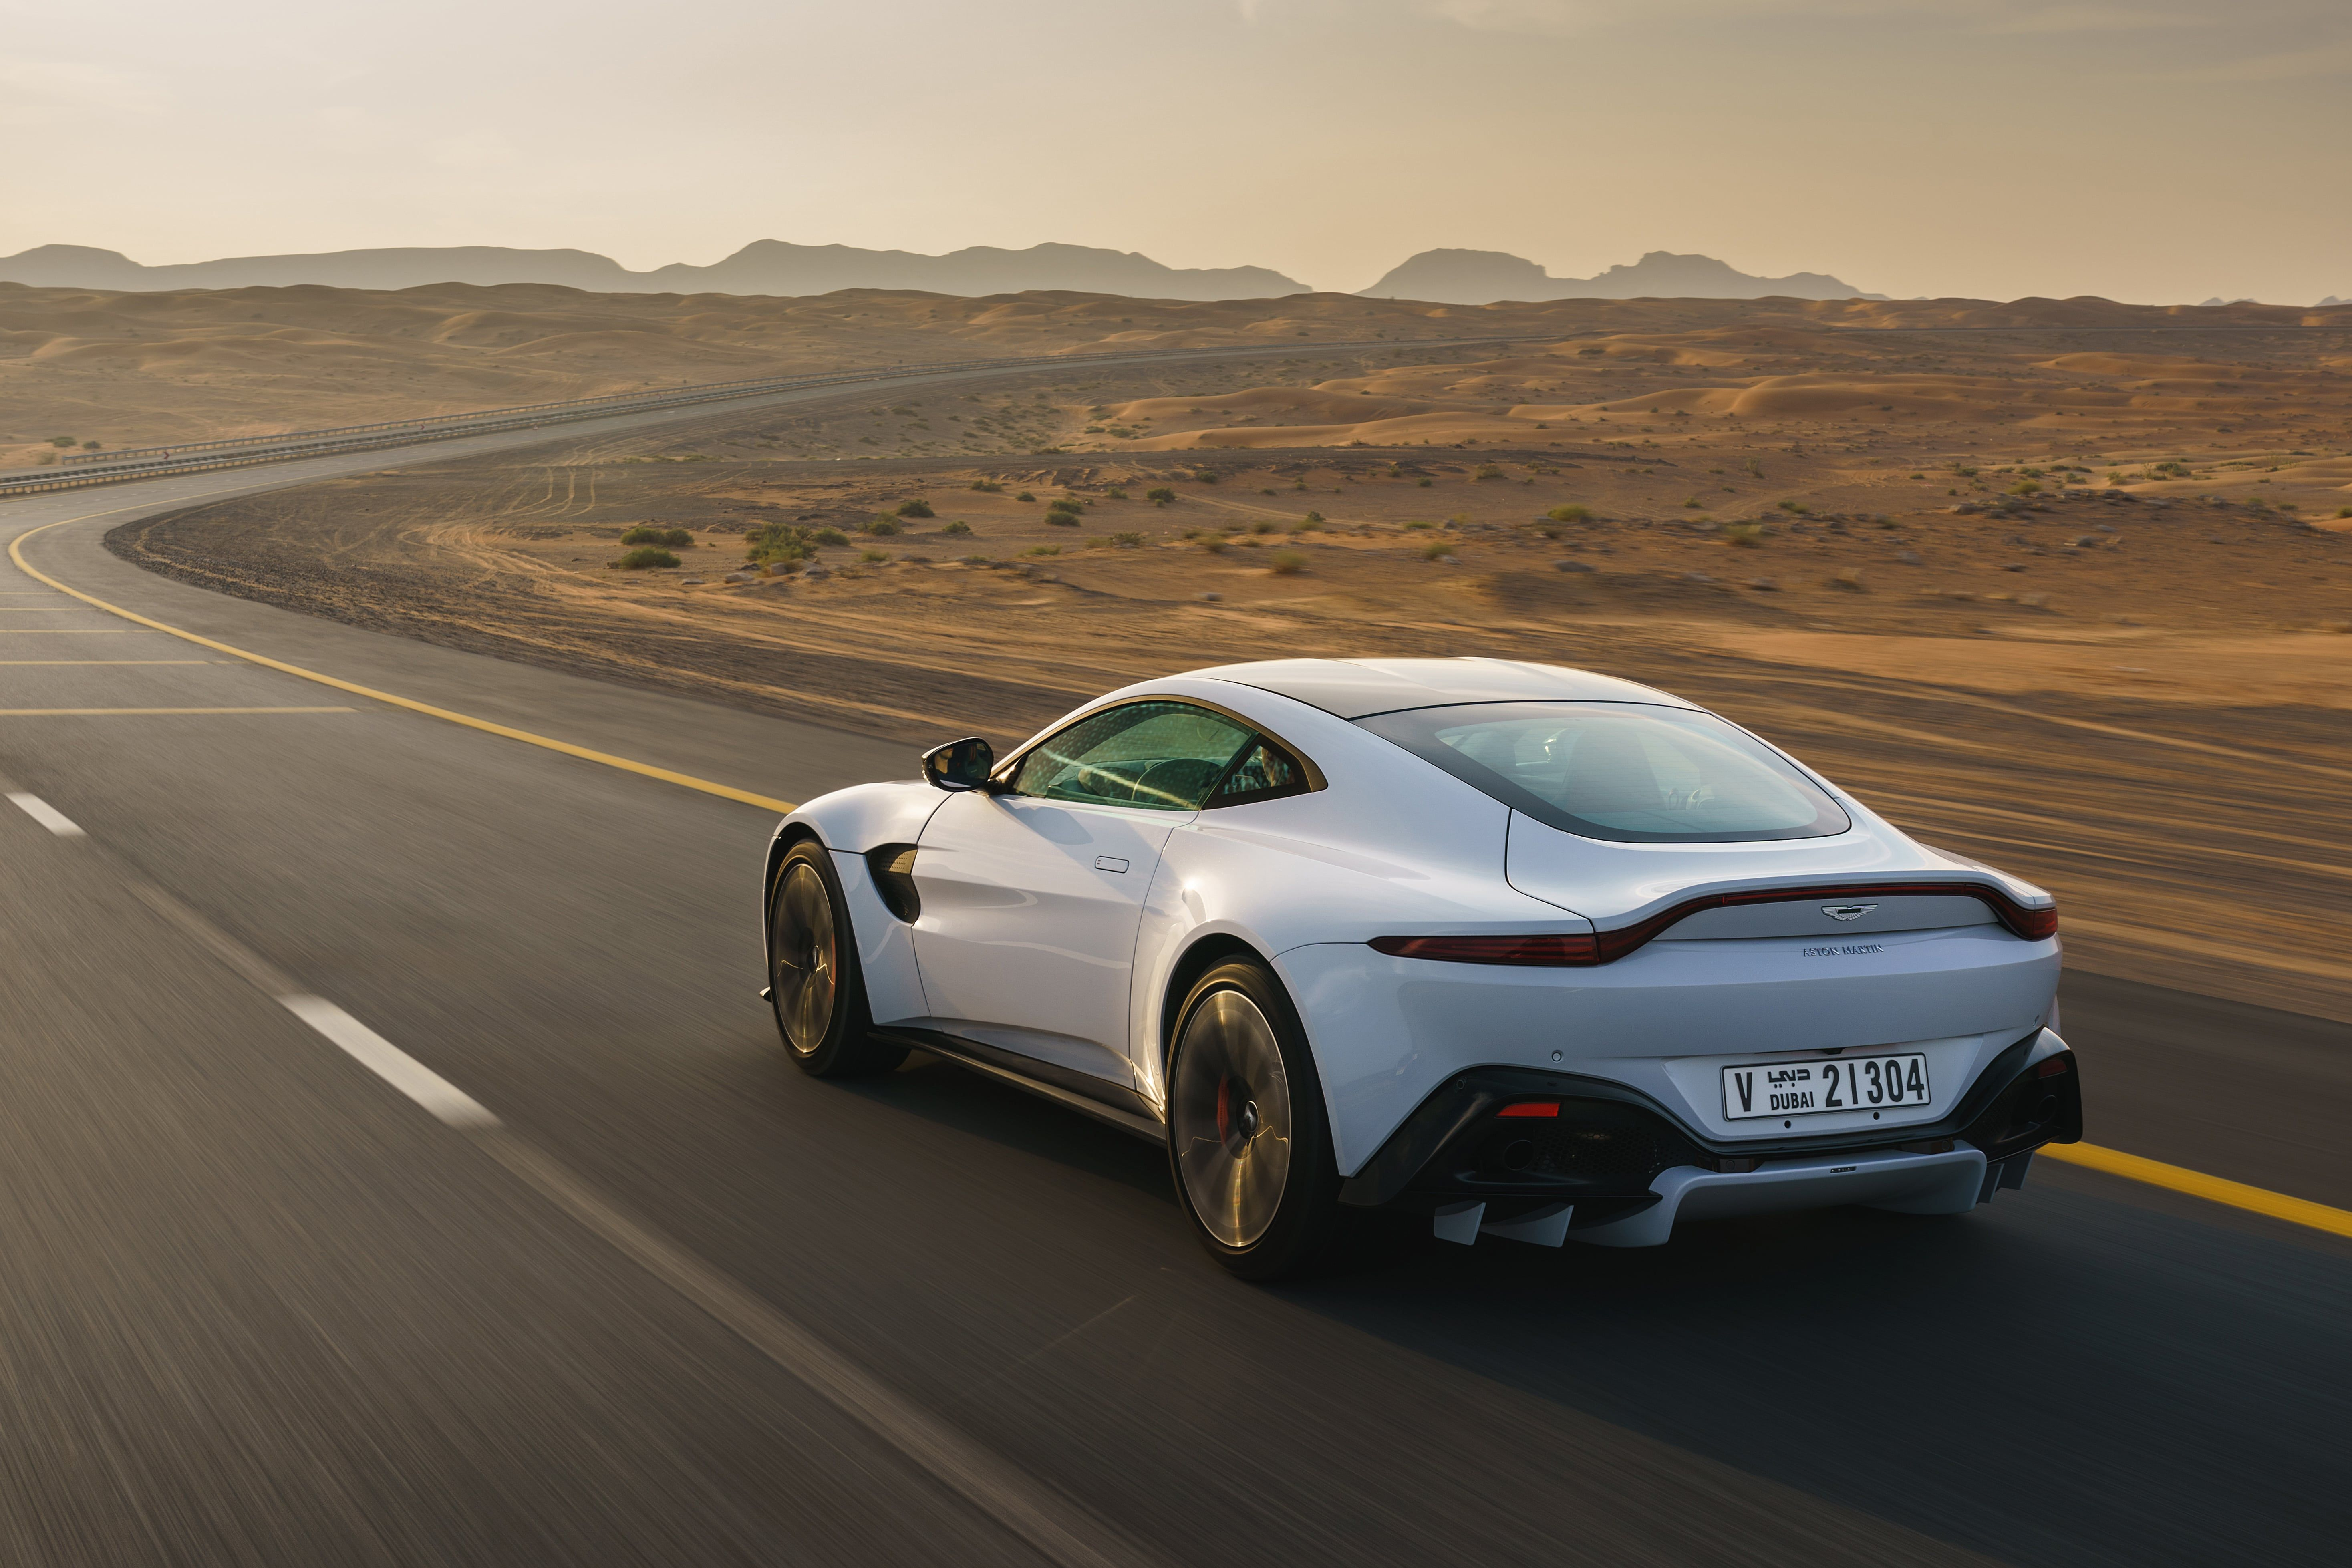 2020 Aston Martin Vantage Is The Best Of Both Worlds